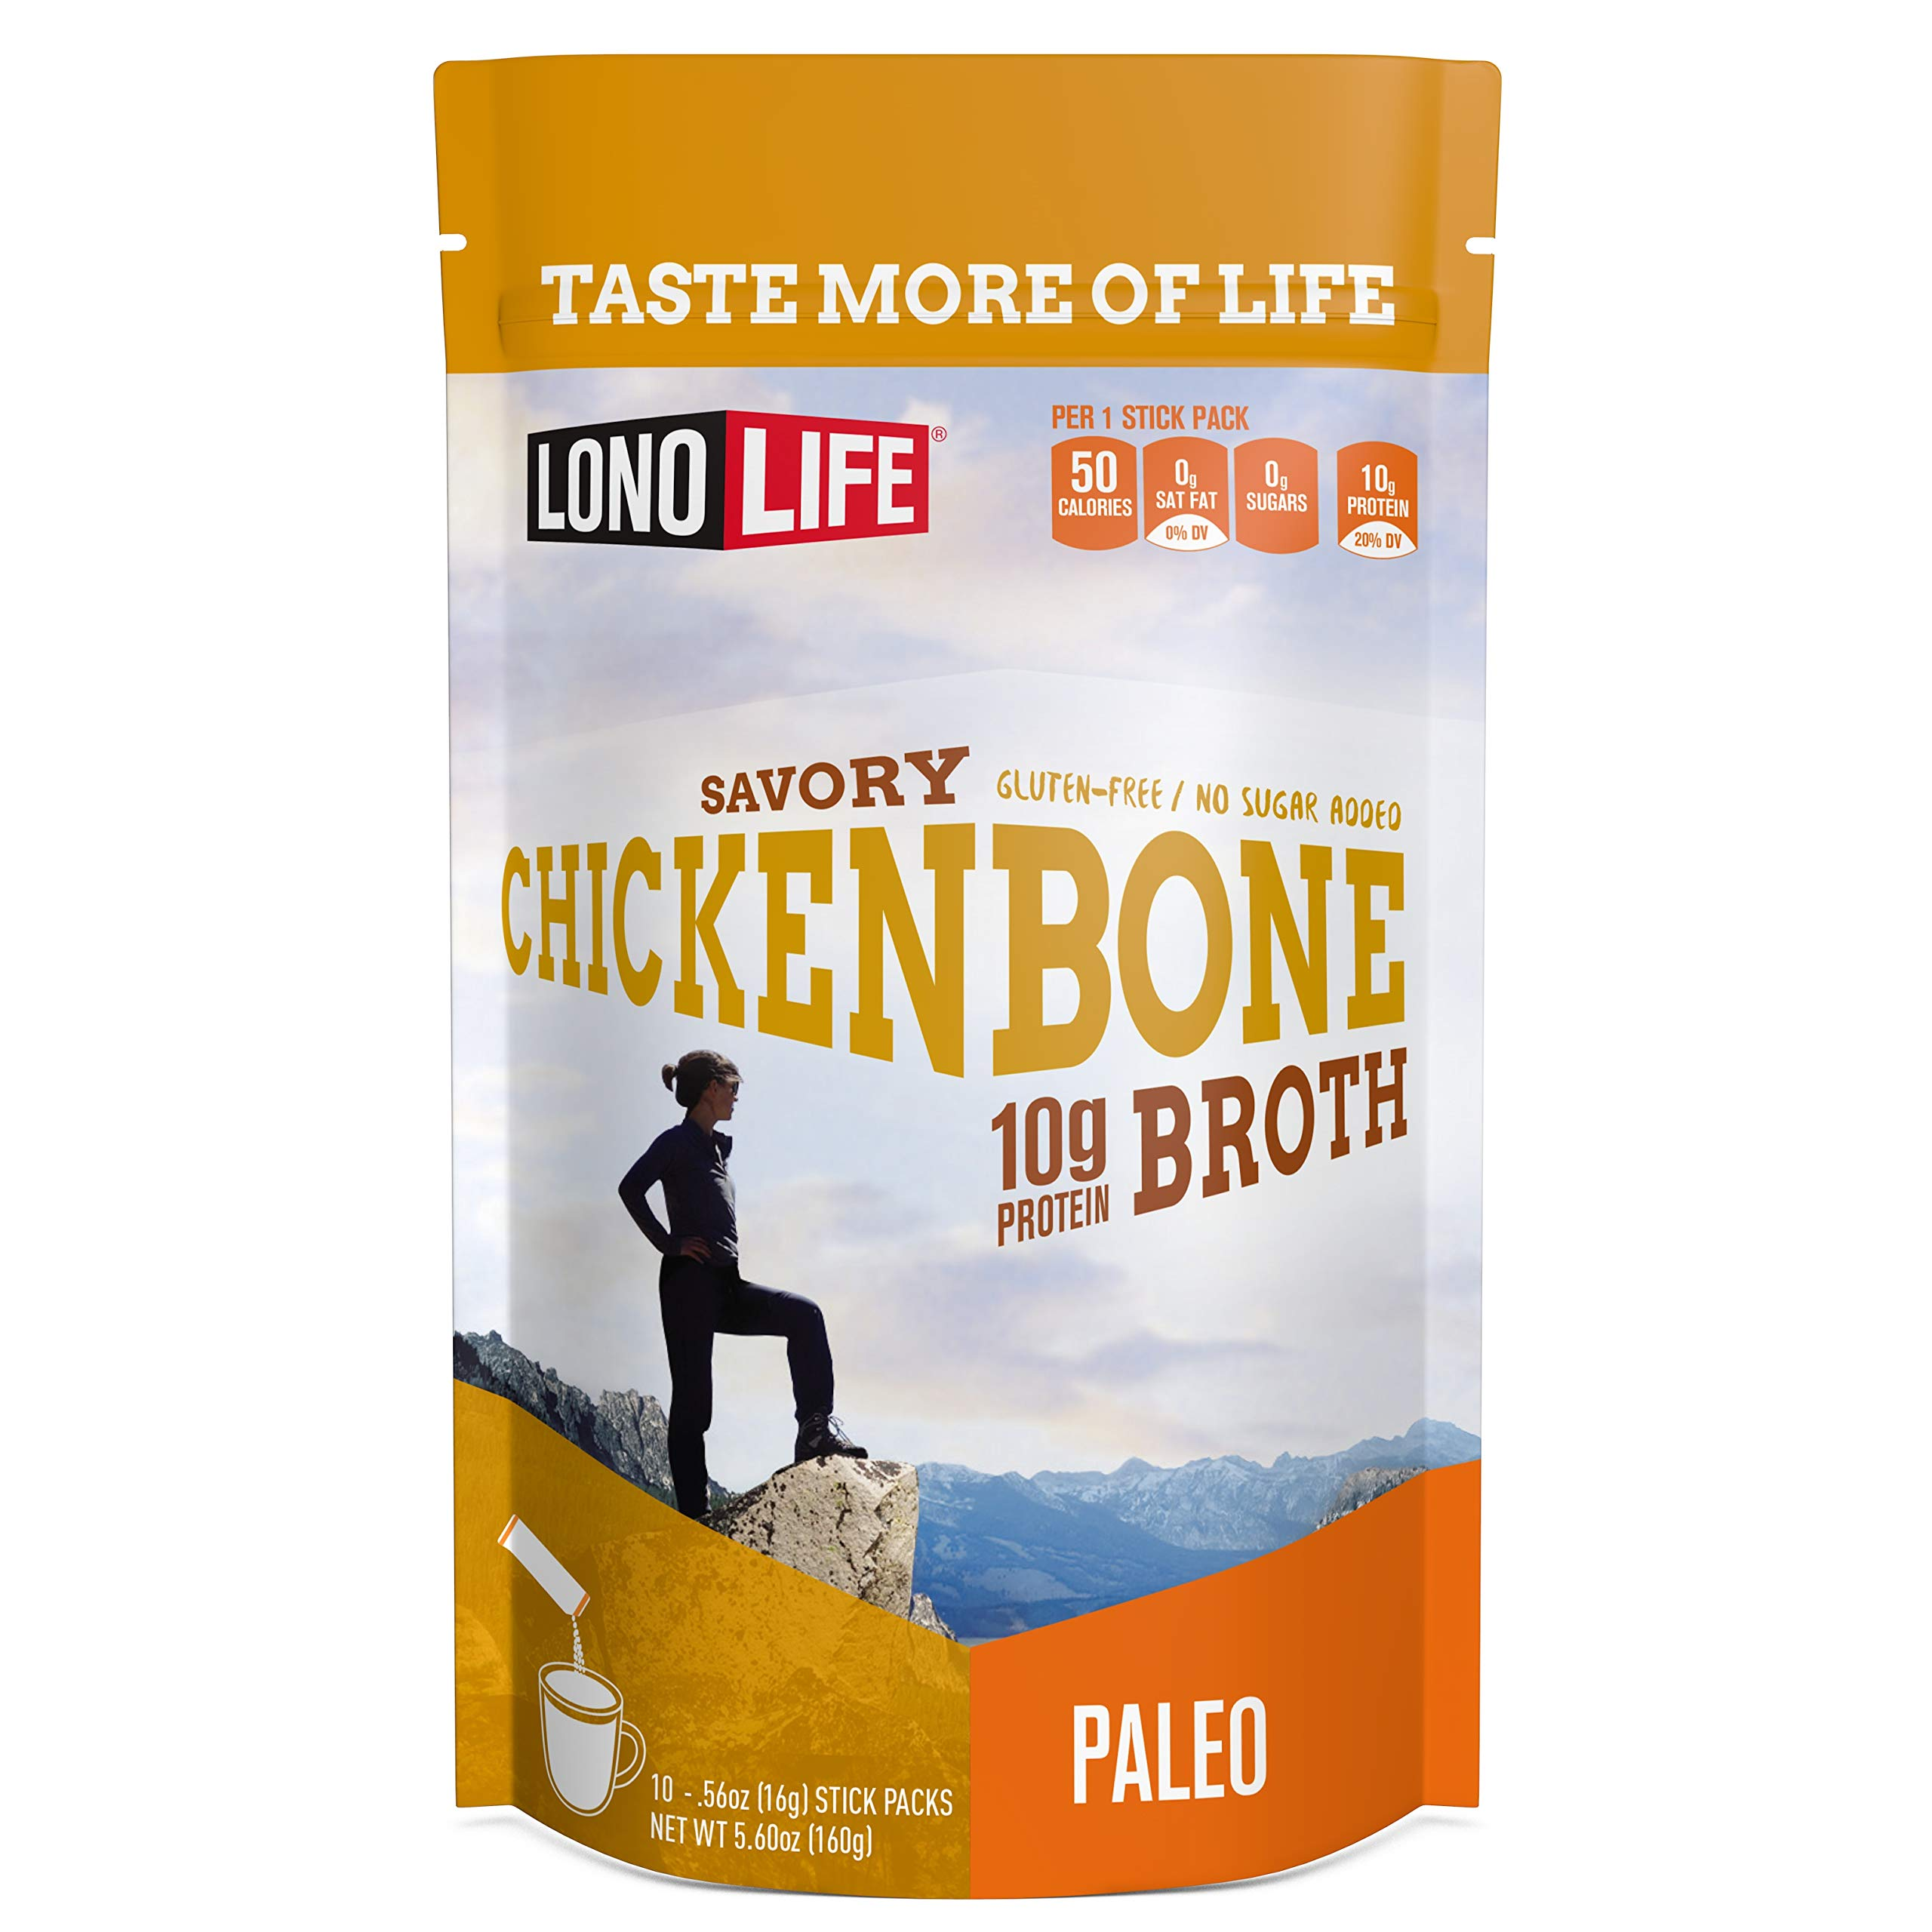 LonoLife Chicken Bone Broth Powder with 10g Protein, Stick Packs, 10 Count by LonoLife (Image #1)